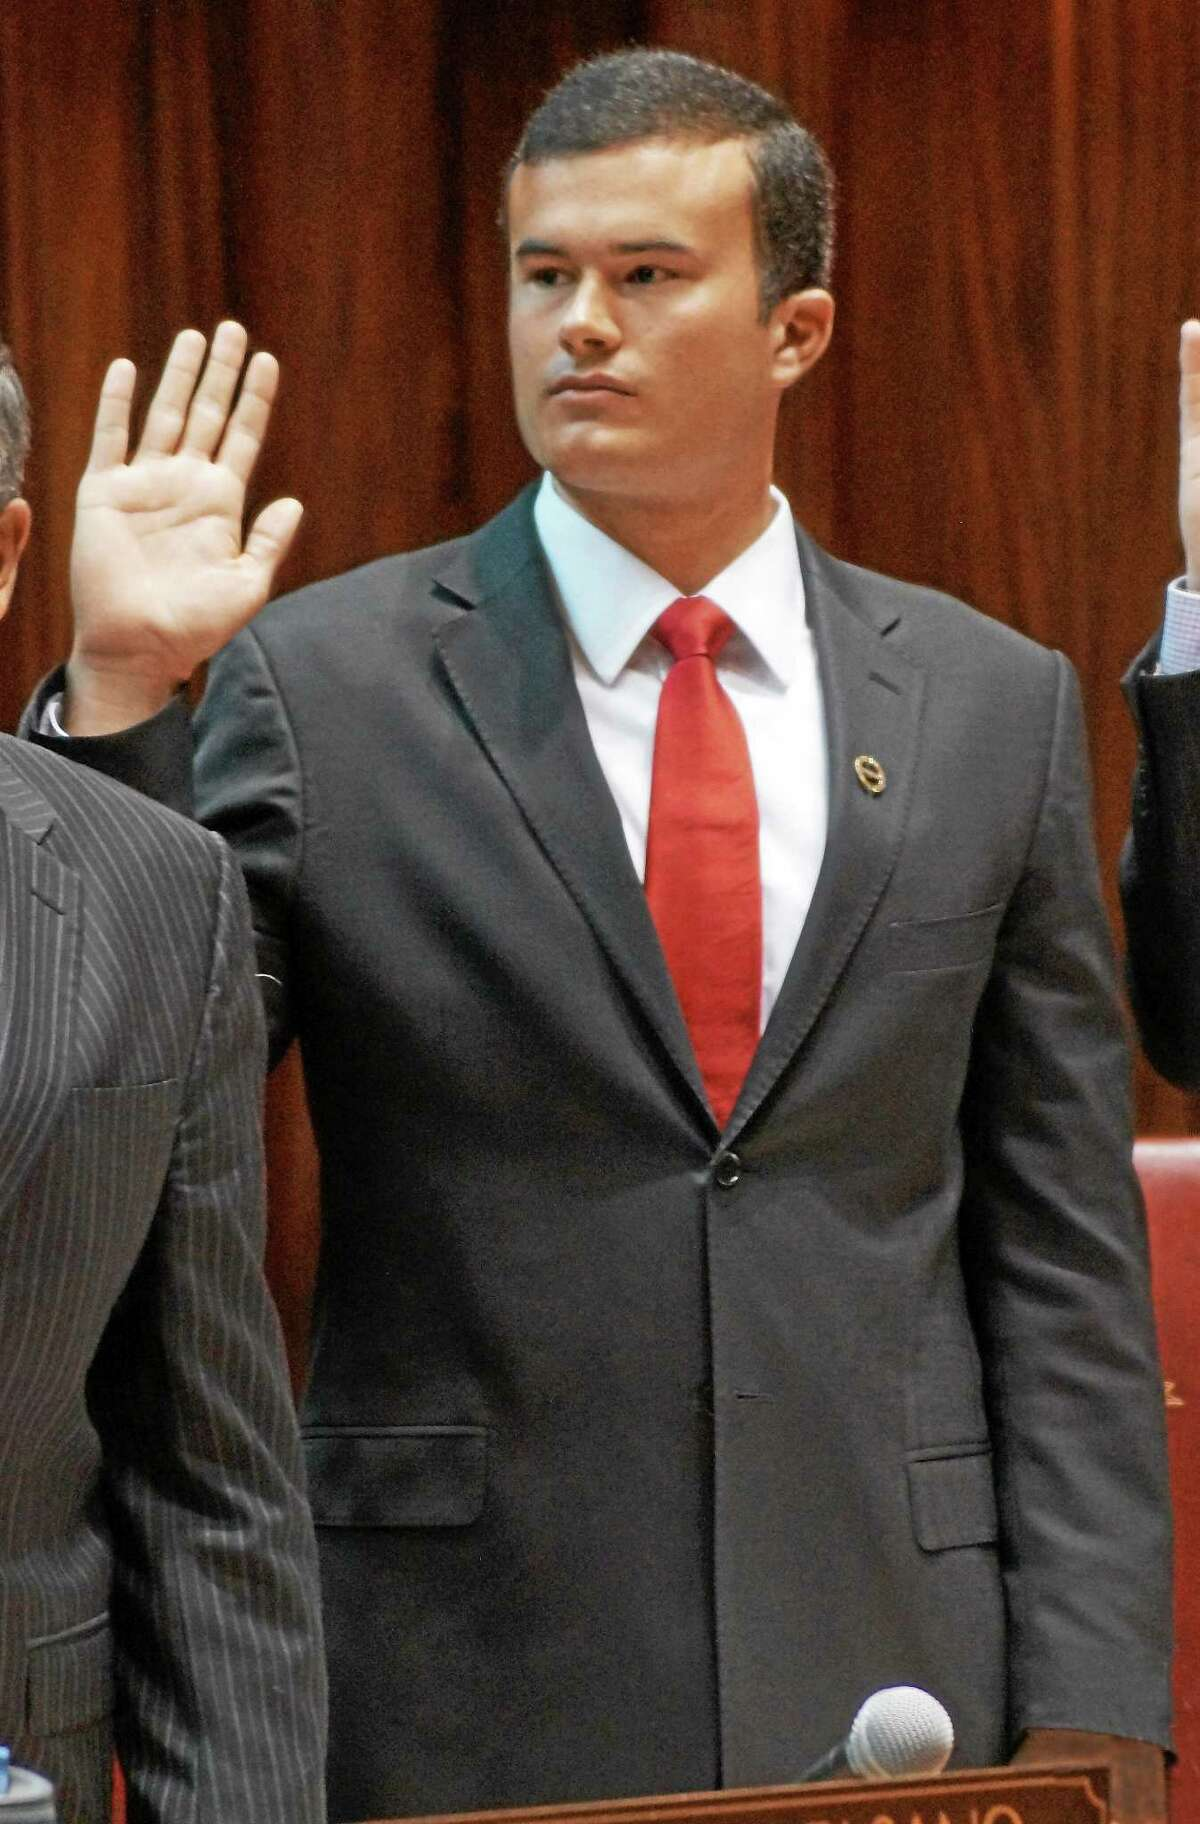 Sen. Art Linares (R-Westbrook) takes the Oath of Office in 2013.